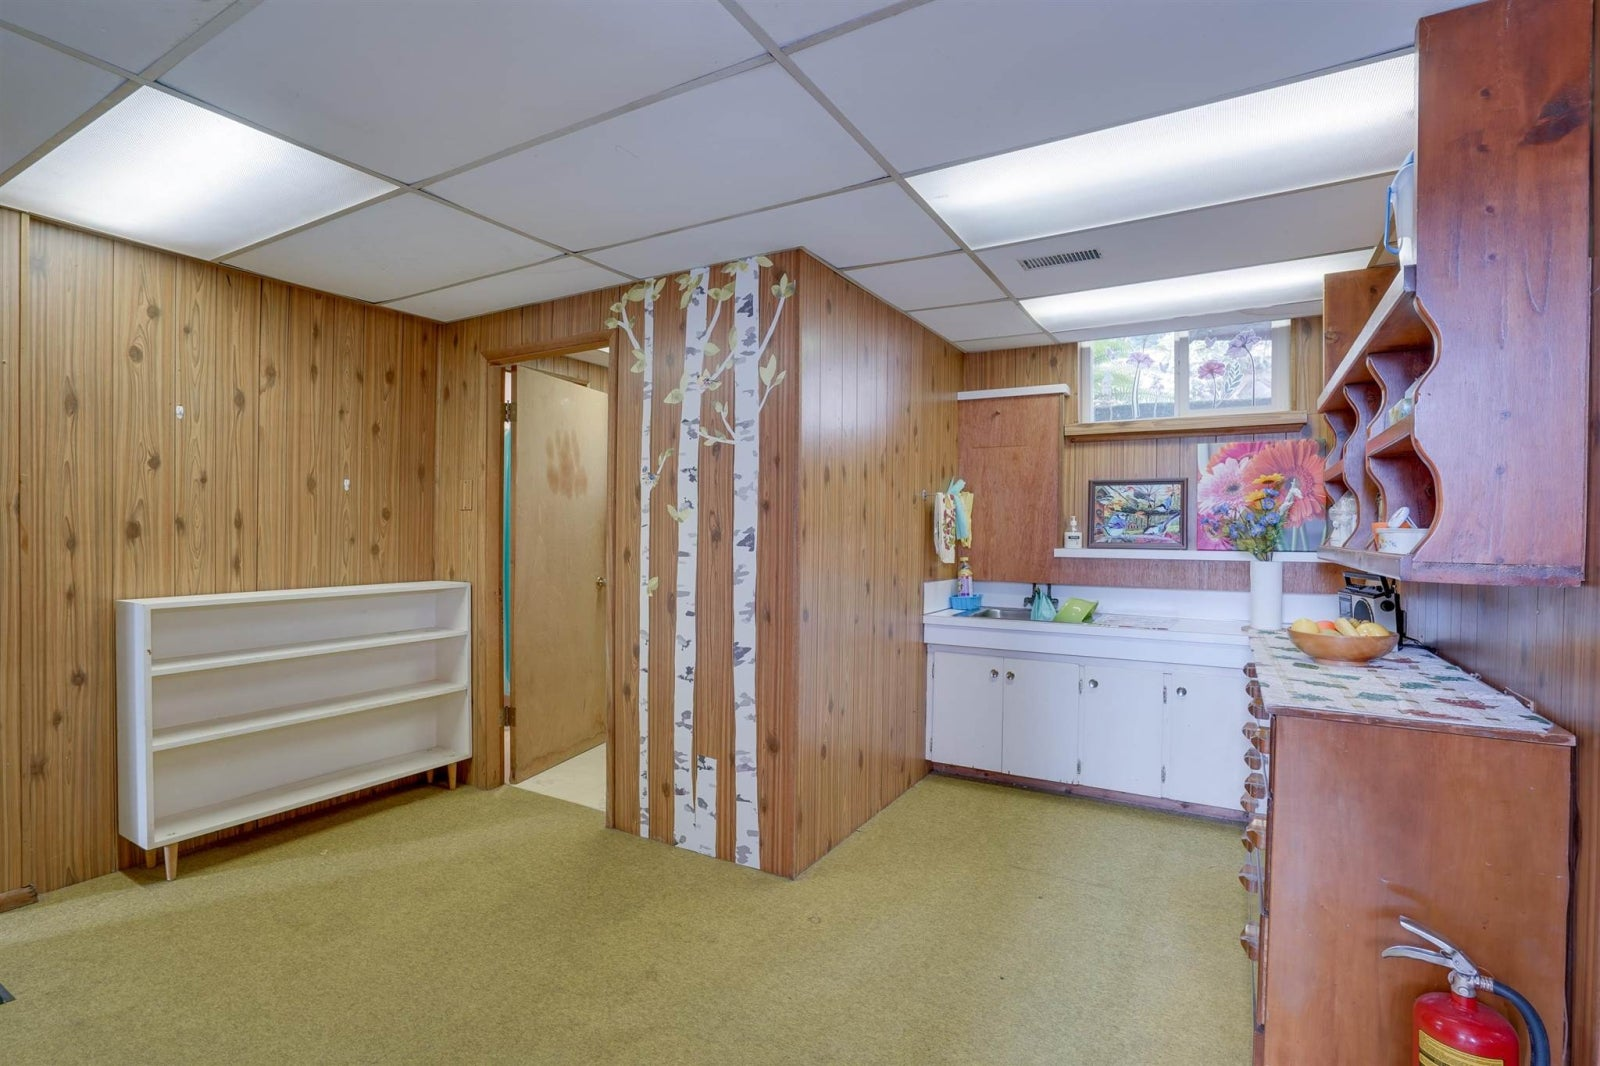 1044 W 17TH STREET - Pemberton Heights House/Single Family for sale, 3 Bedrooms (R2602389) #14